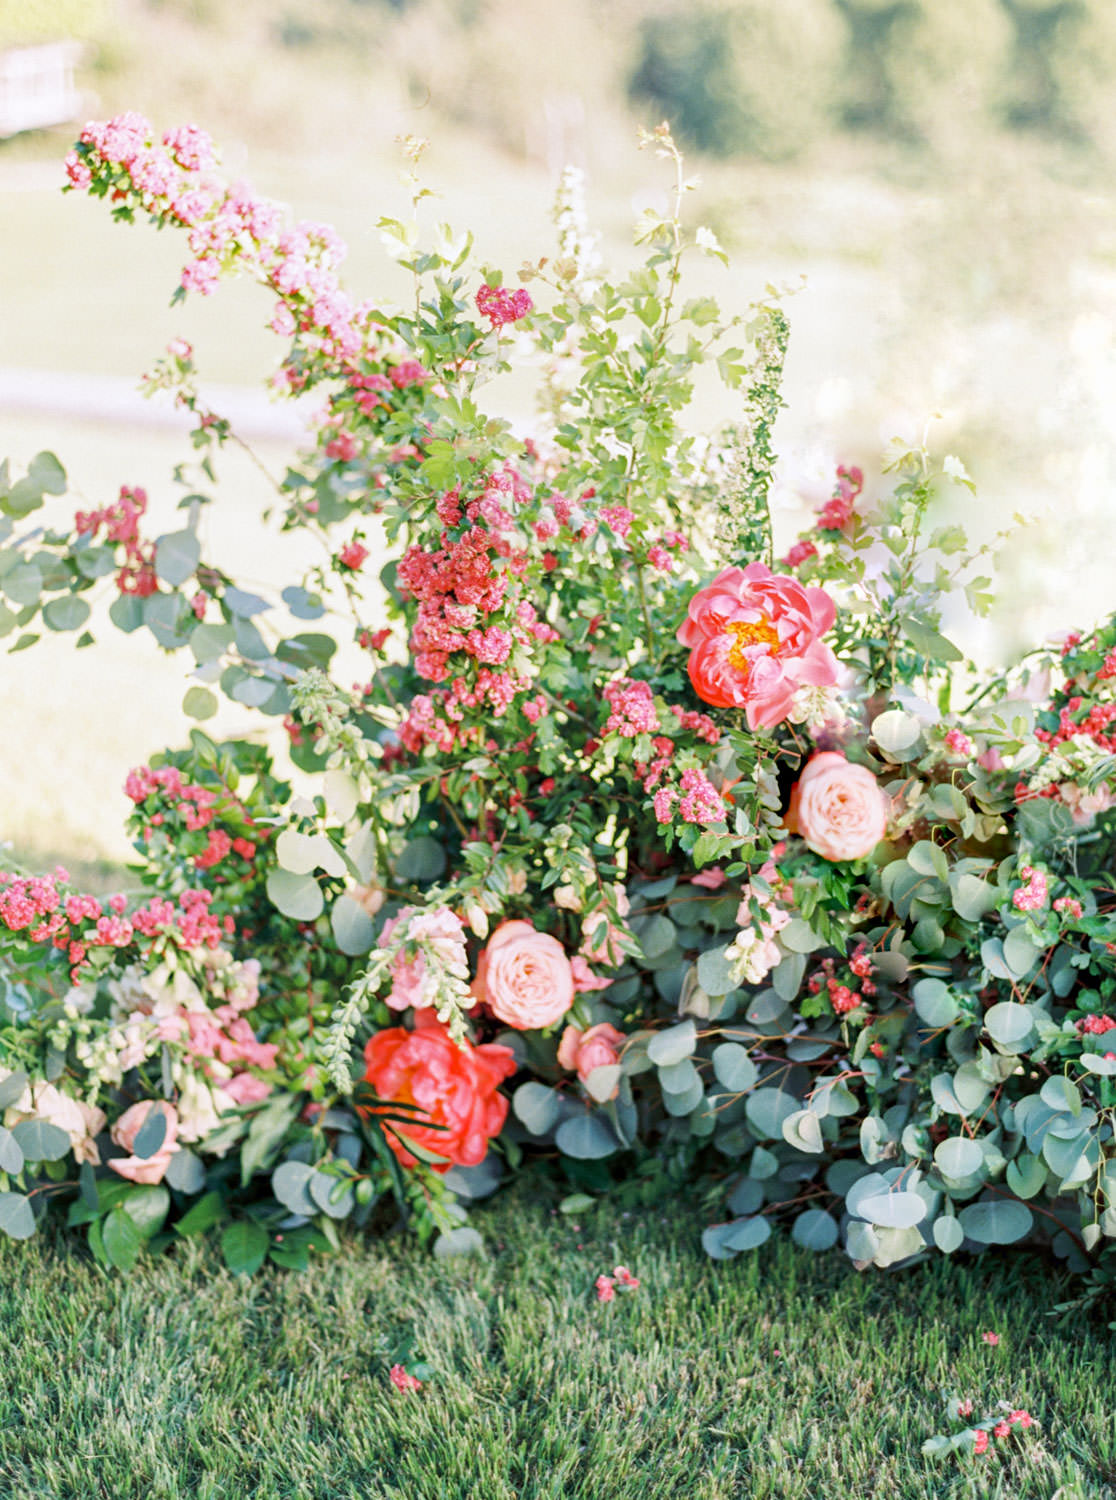 Ceremony semi circle floral arrangement with greenery and pink flowers, Whispering Rose Ranch wedding shot on film, Cavin Elizabeth Photography